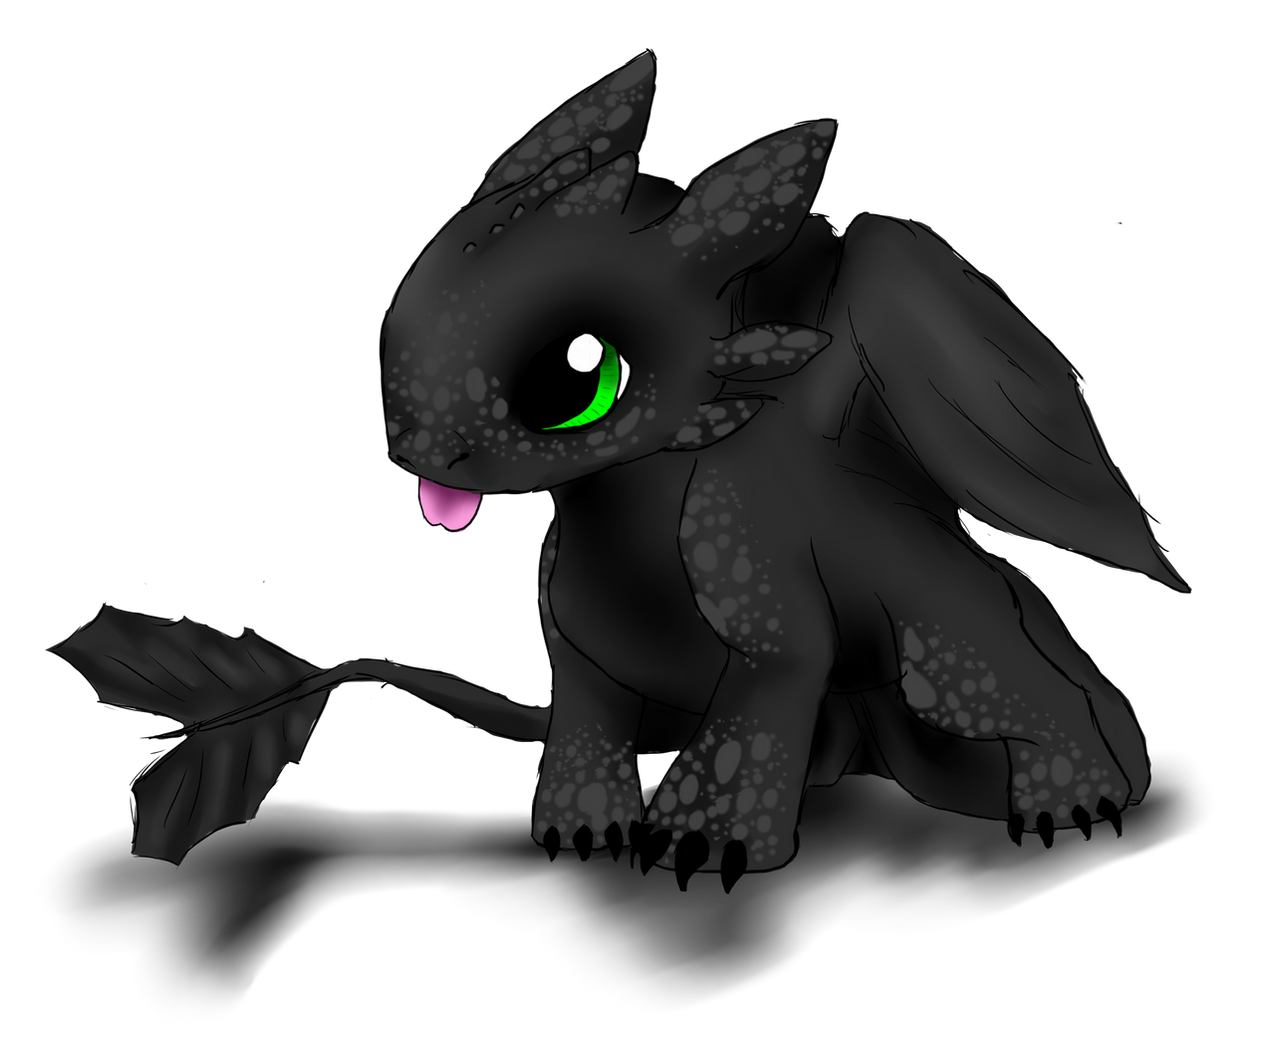 drawings of toothless baby toothless drawing at getdrawings free download of toothless drawings